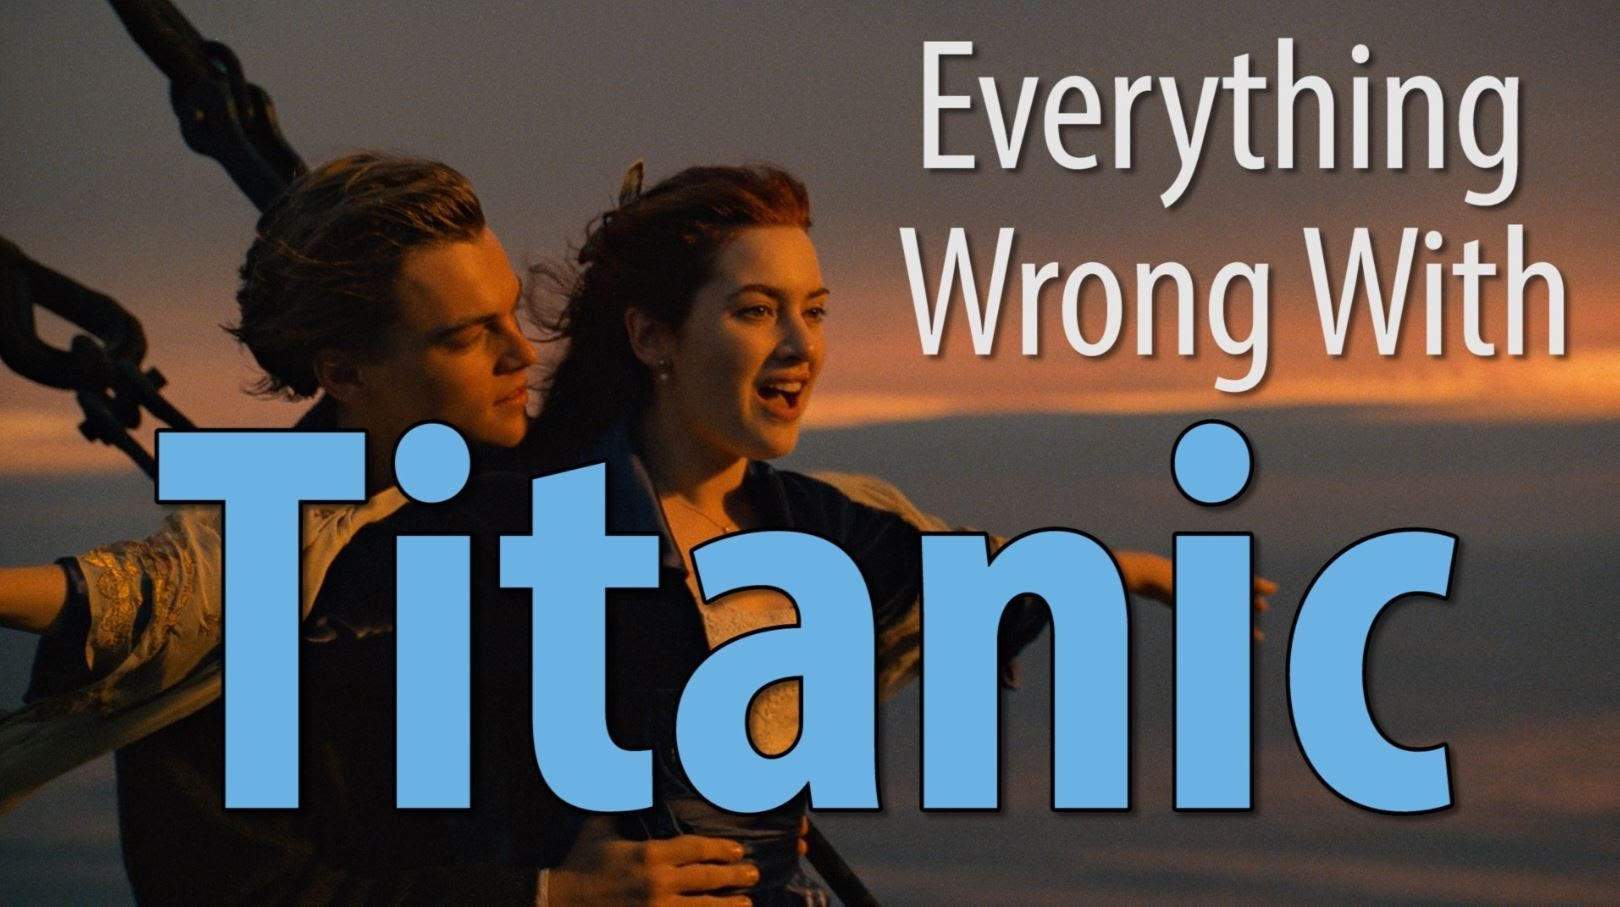 Titanic full movie mp4 free download in english ioodd.